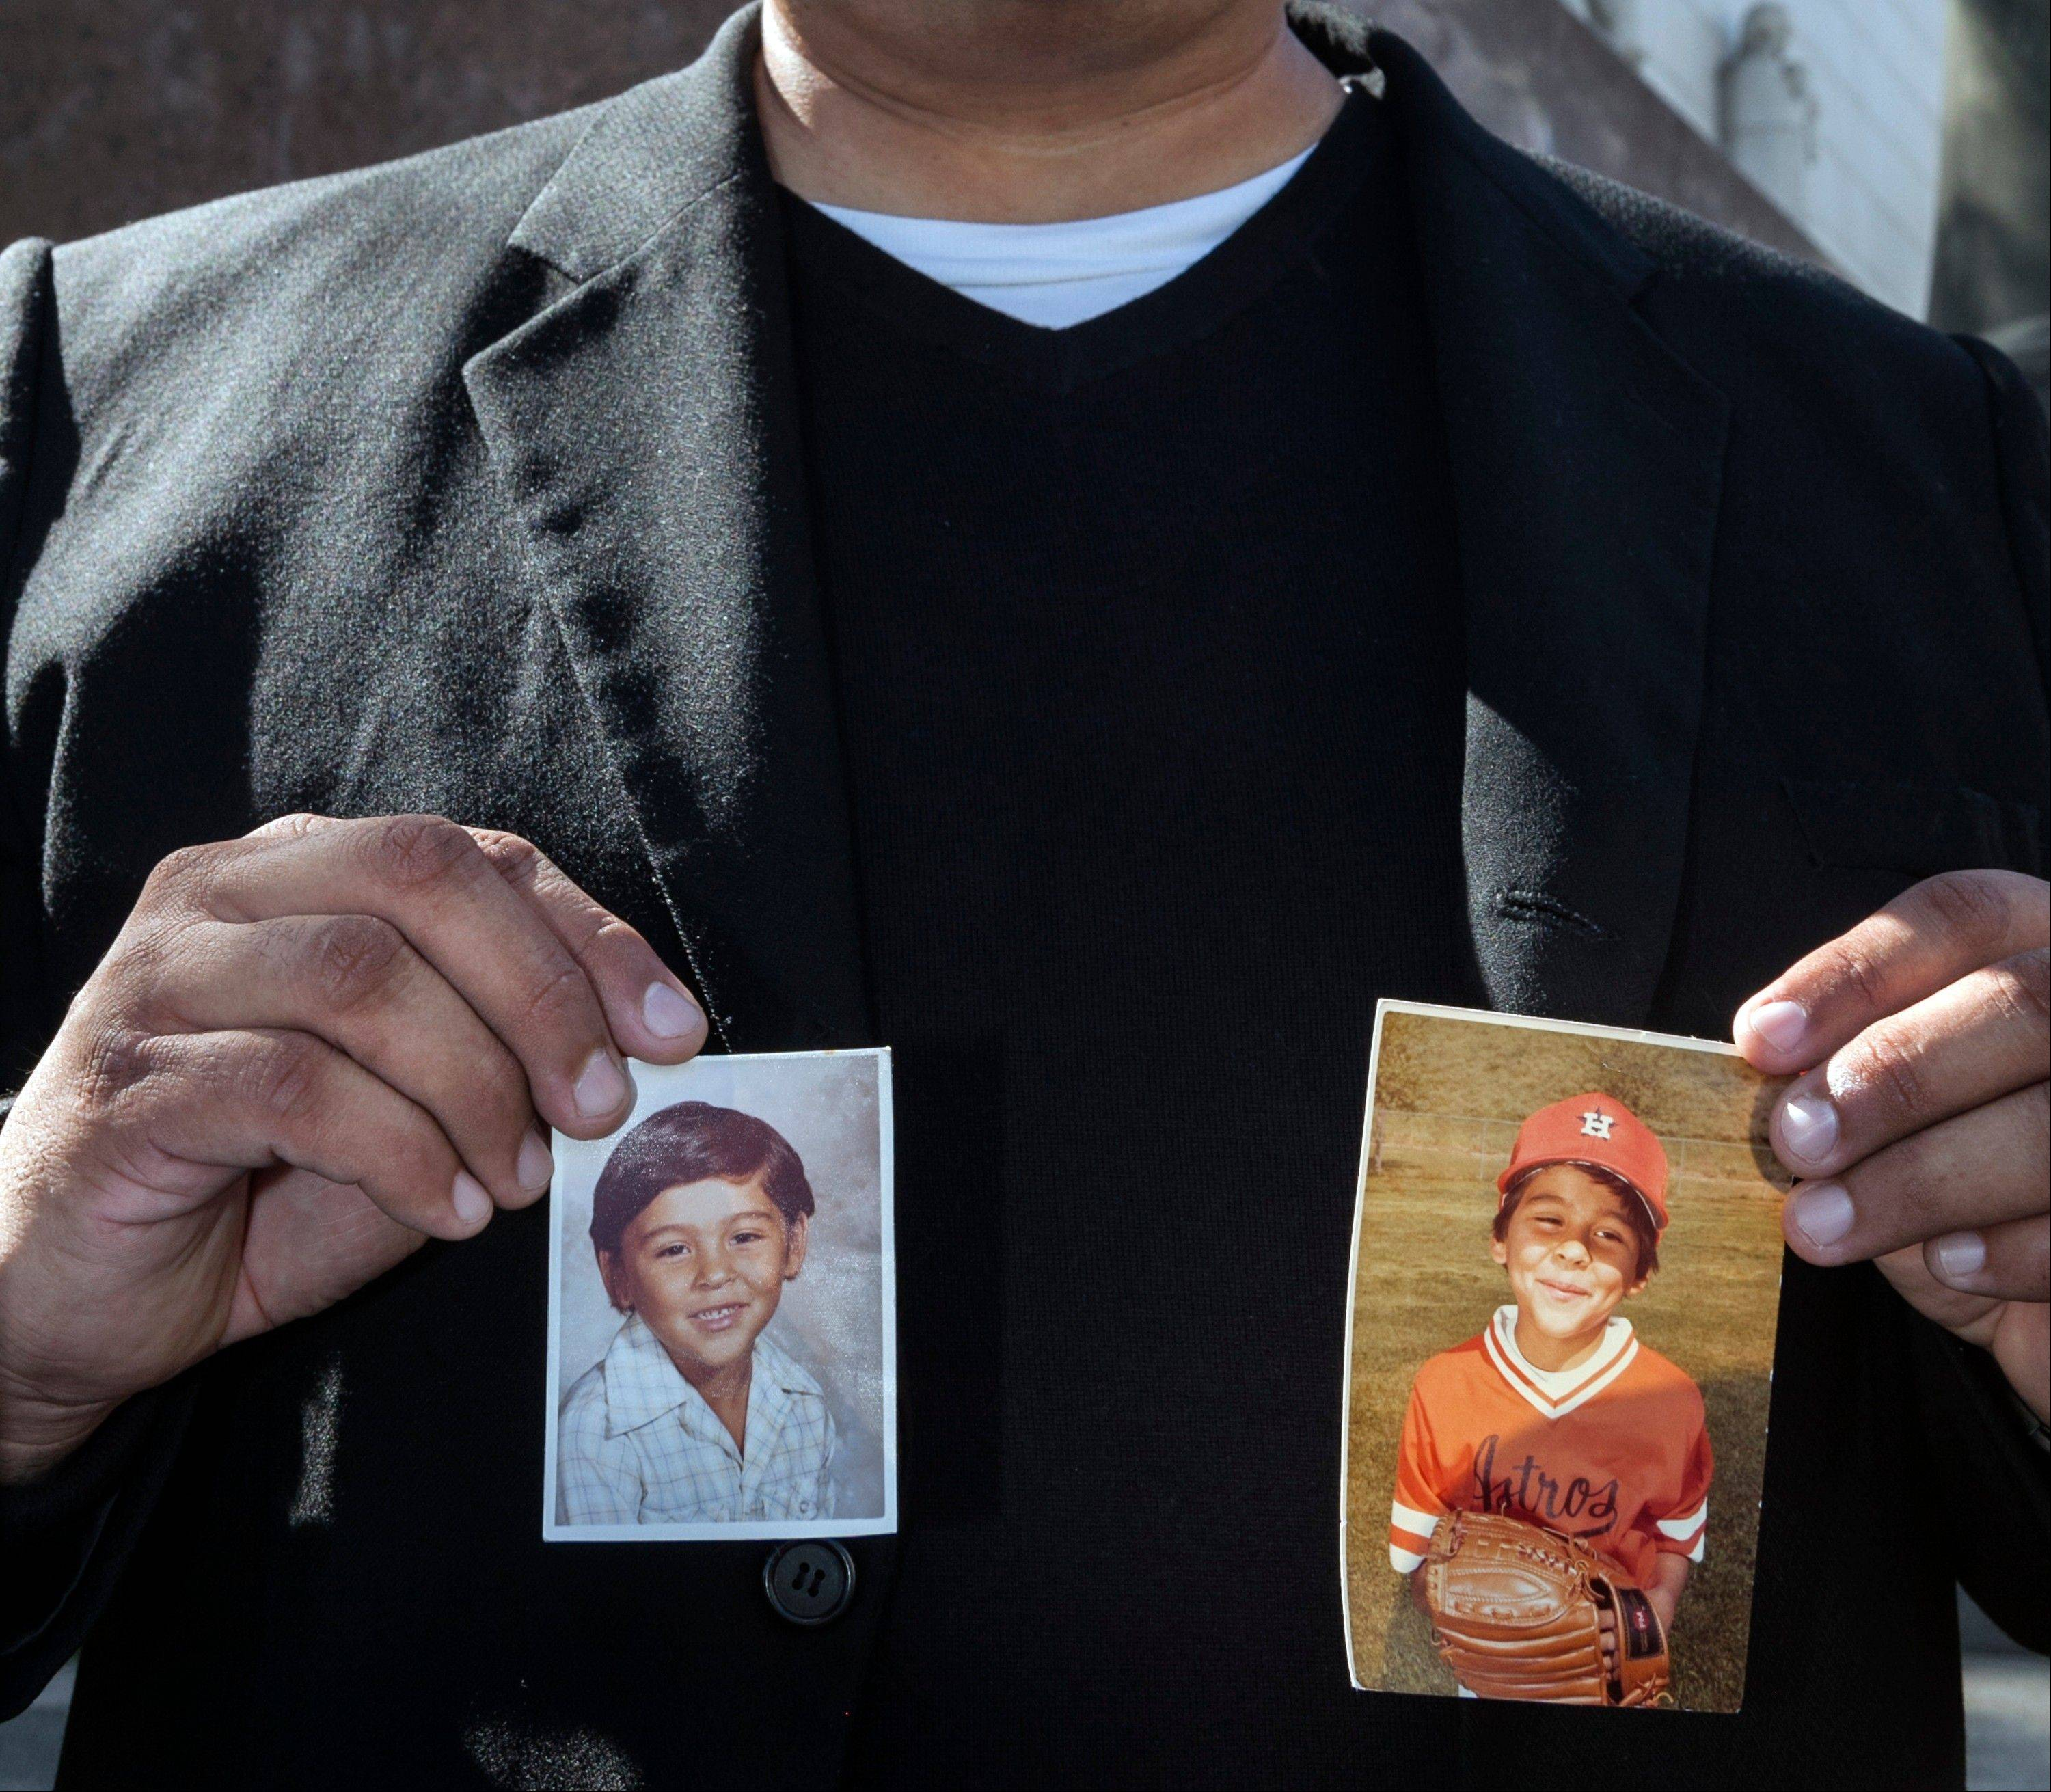 Michael Duran, a plaintiff in a sex abuse settlement with the Roman Catholic Archdiocese of Los Angeles, holds up pictures of himself when he was a child during a news conference to announce details of a nearly $10 million settlement of their lawsuits against the Archdiocese of Los Angeles Thursday, March 14, 2013. The U.S. church�s challenges include recovering from the clergy sexual abuse scandal, which has resulted in the bankruptcies of prominent archdioceses and cost the Church in America an estimated $3 billion in legal settlements.